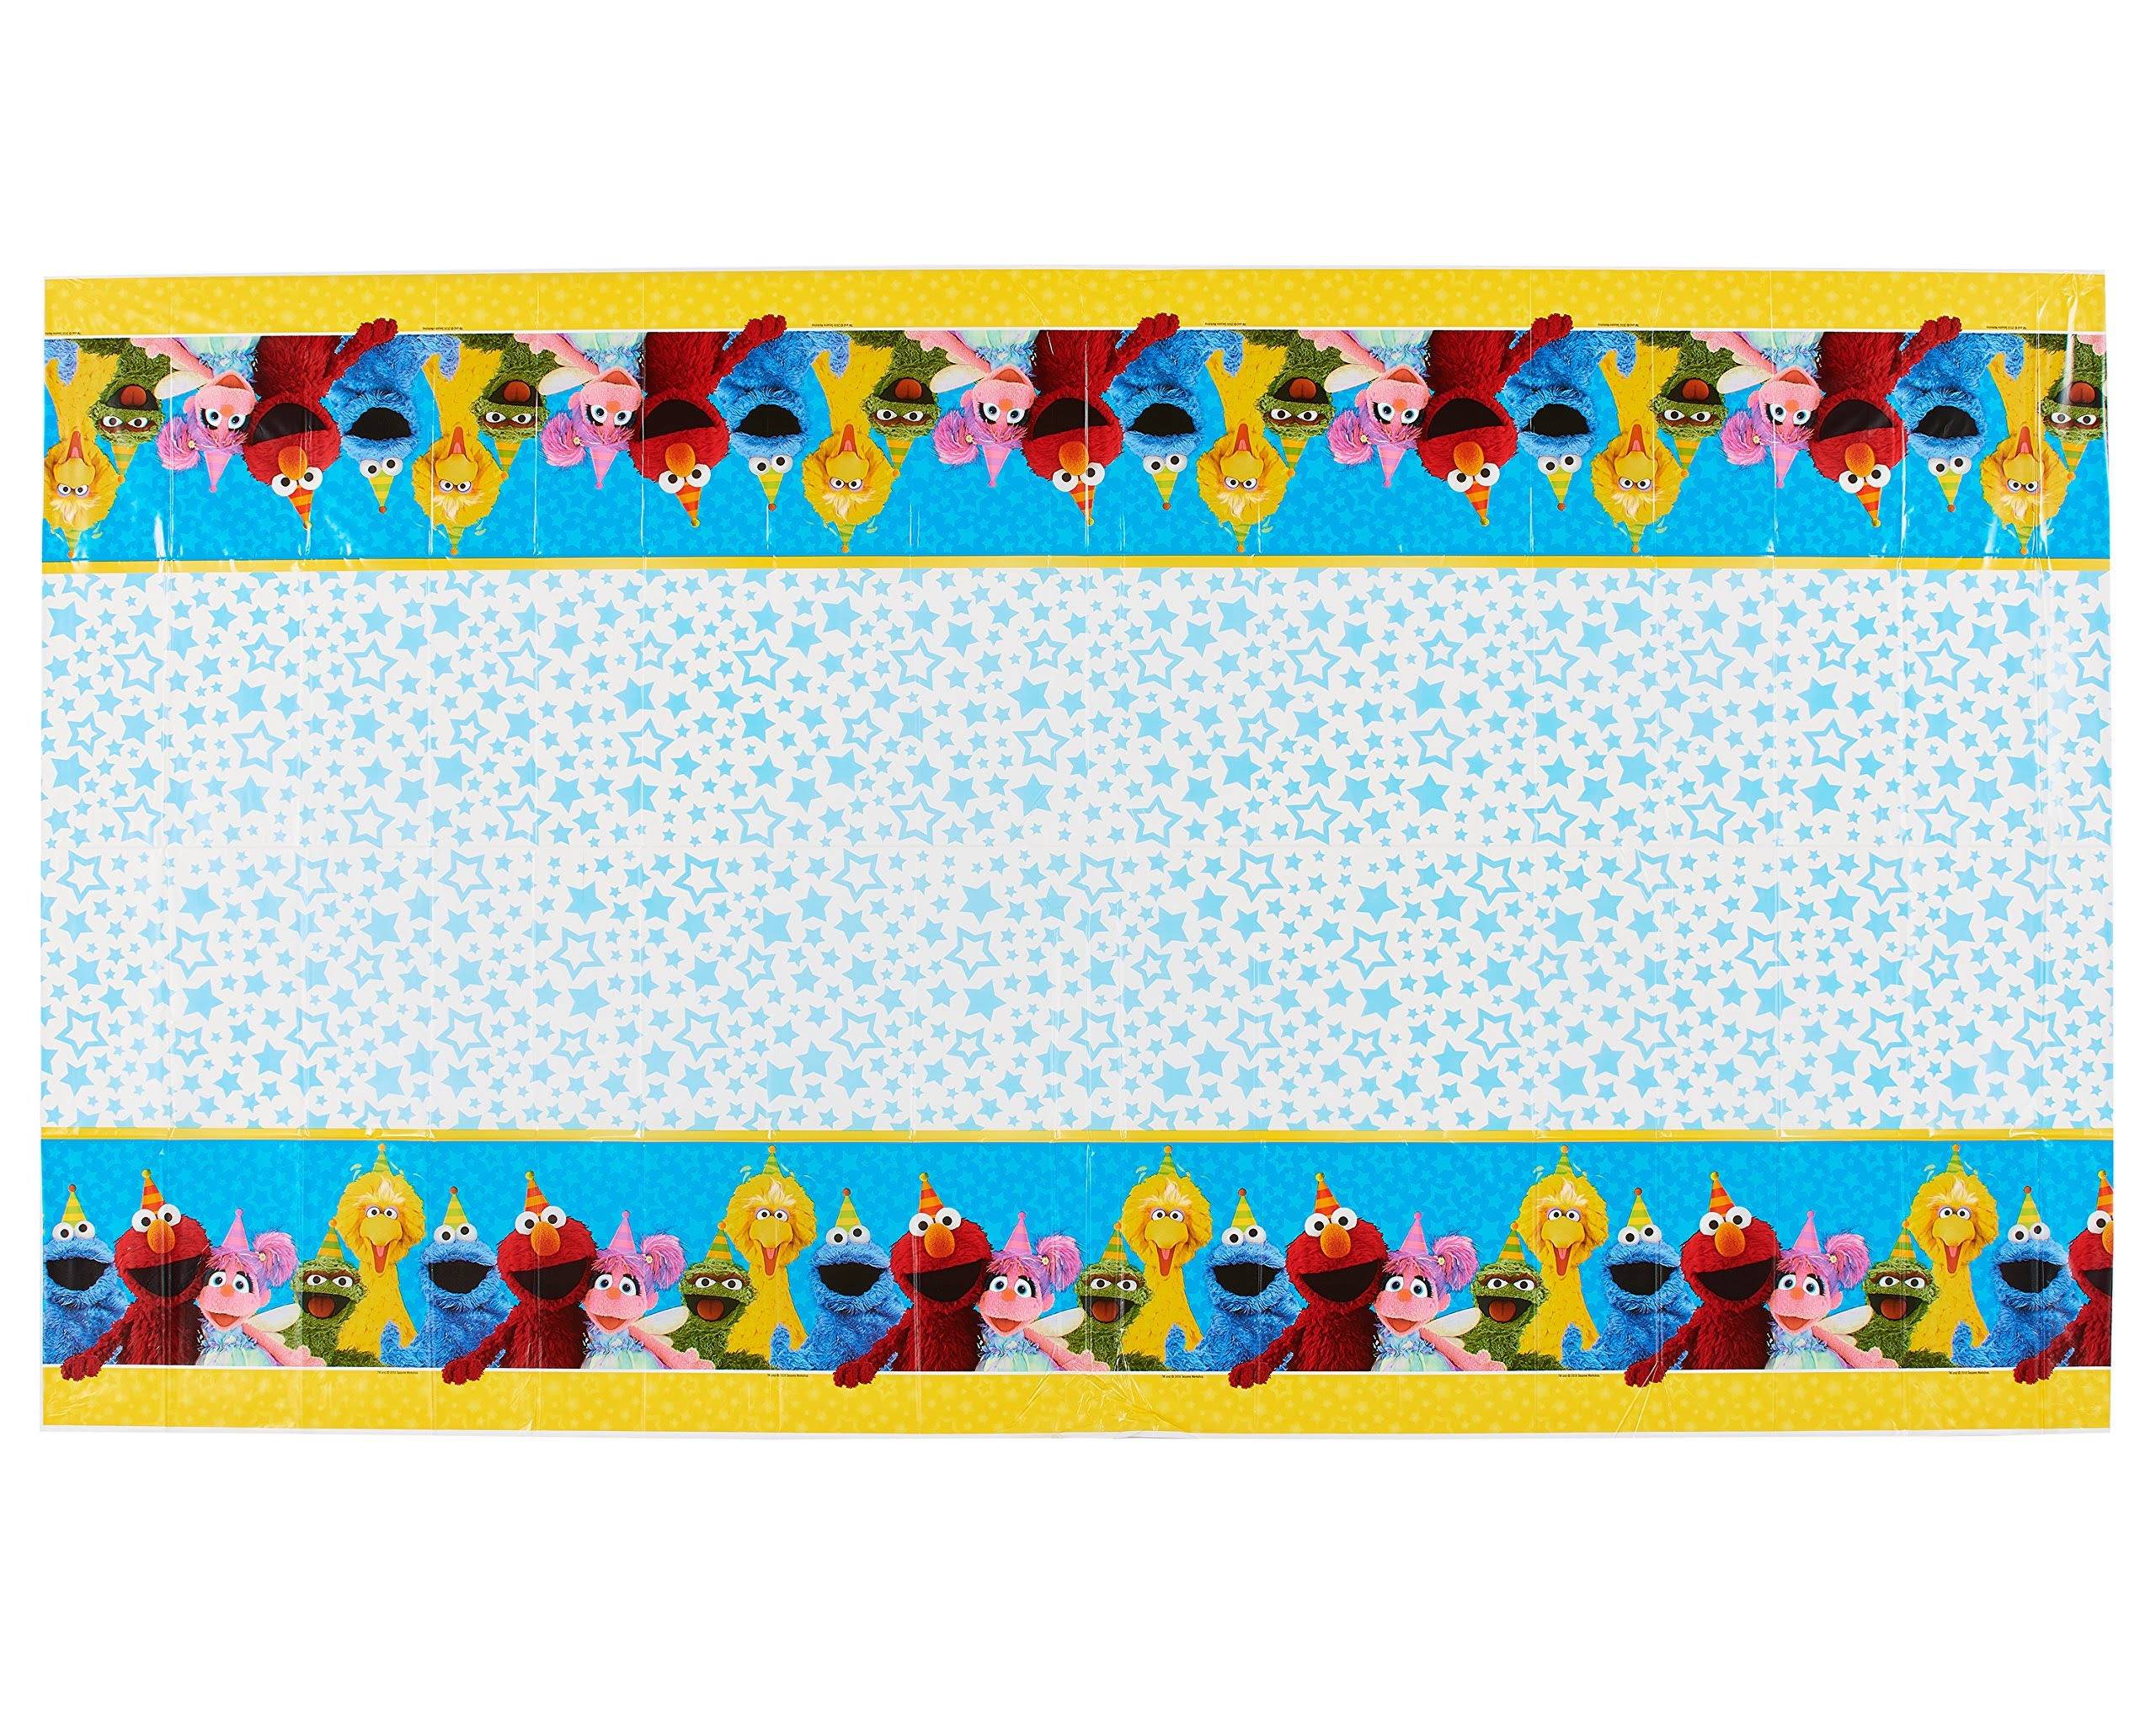 "American Greetings Sesame Street Plastic Table Cover - 54"" x 96"""